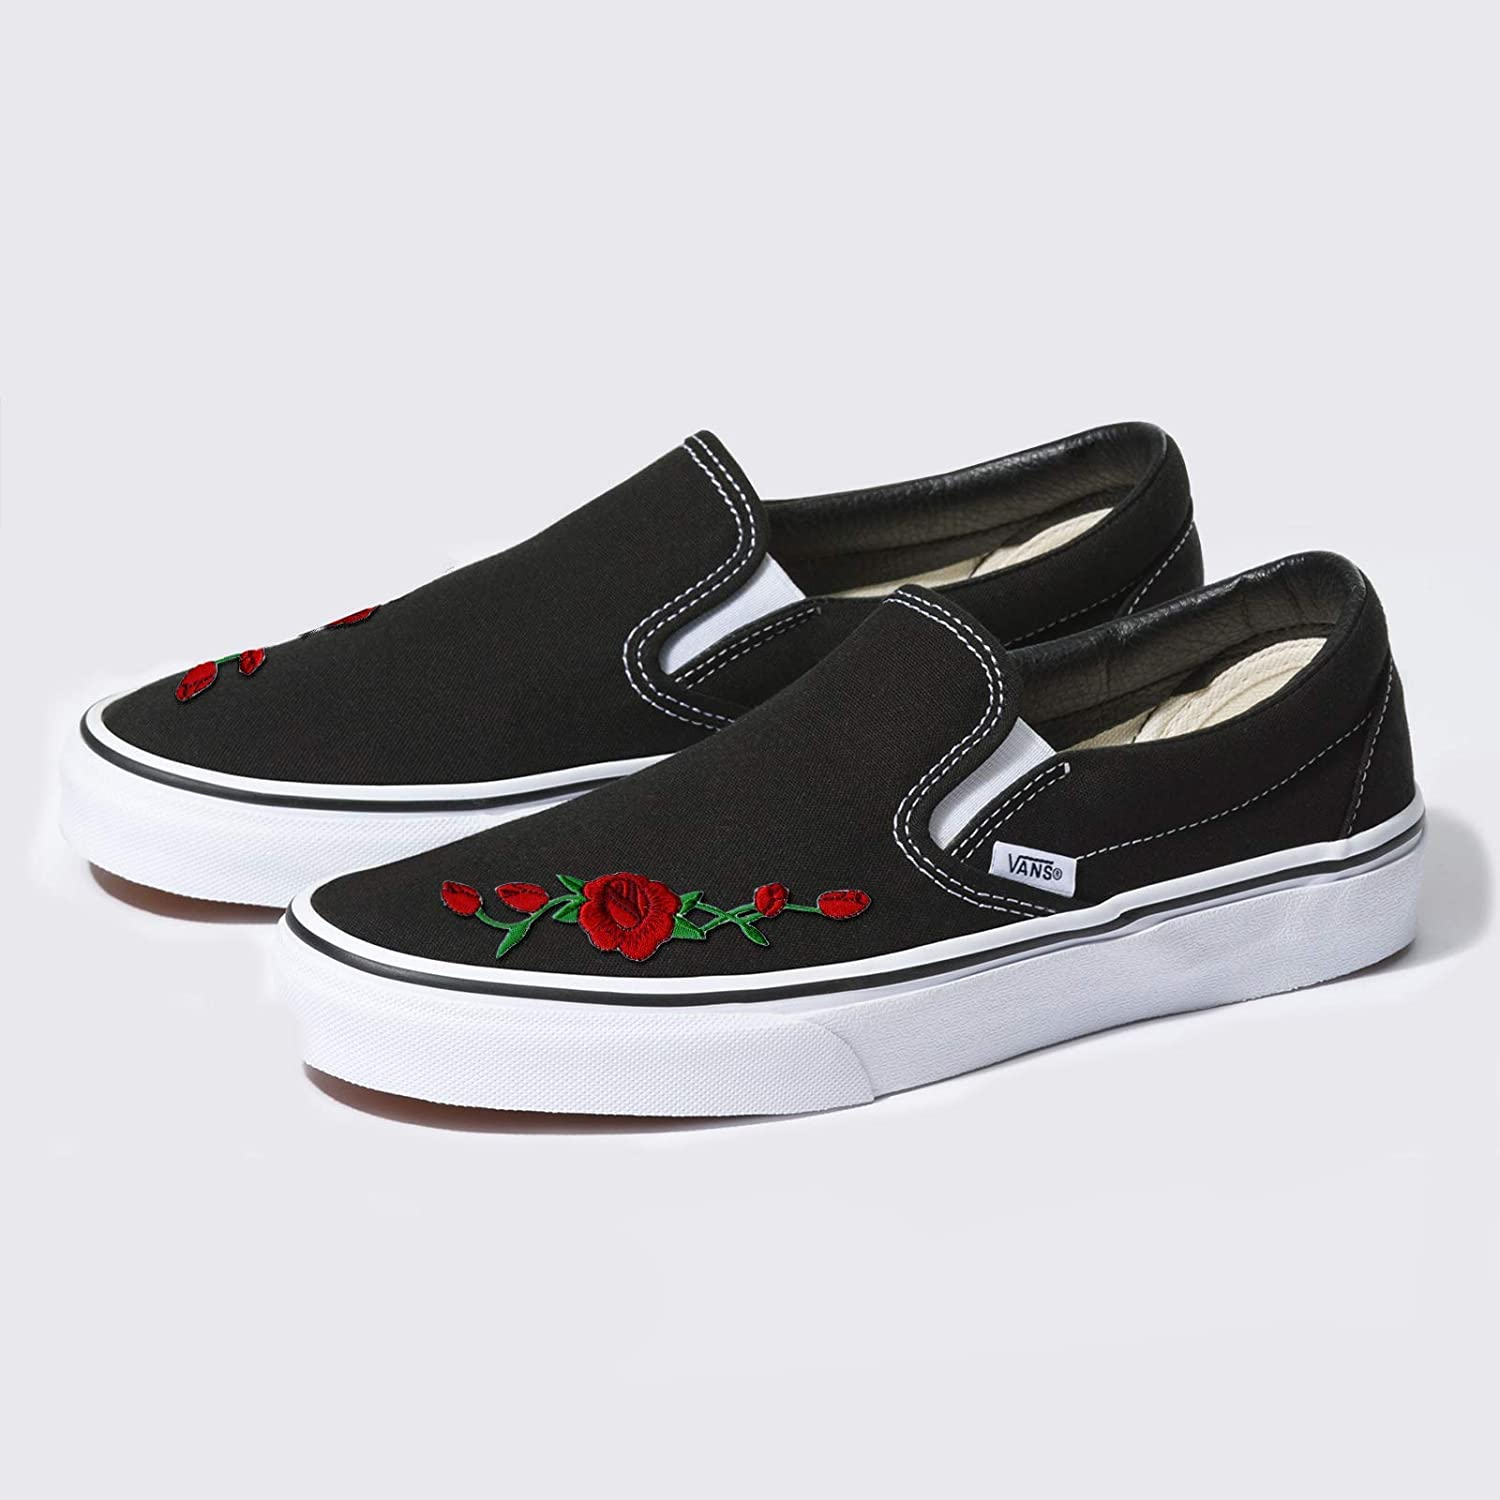 Amazon.com: Custom Black Slip-On Vans Embroidered Red Rose ...